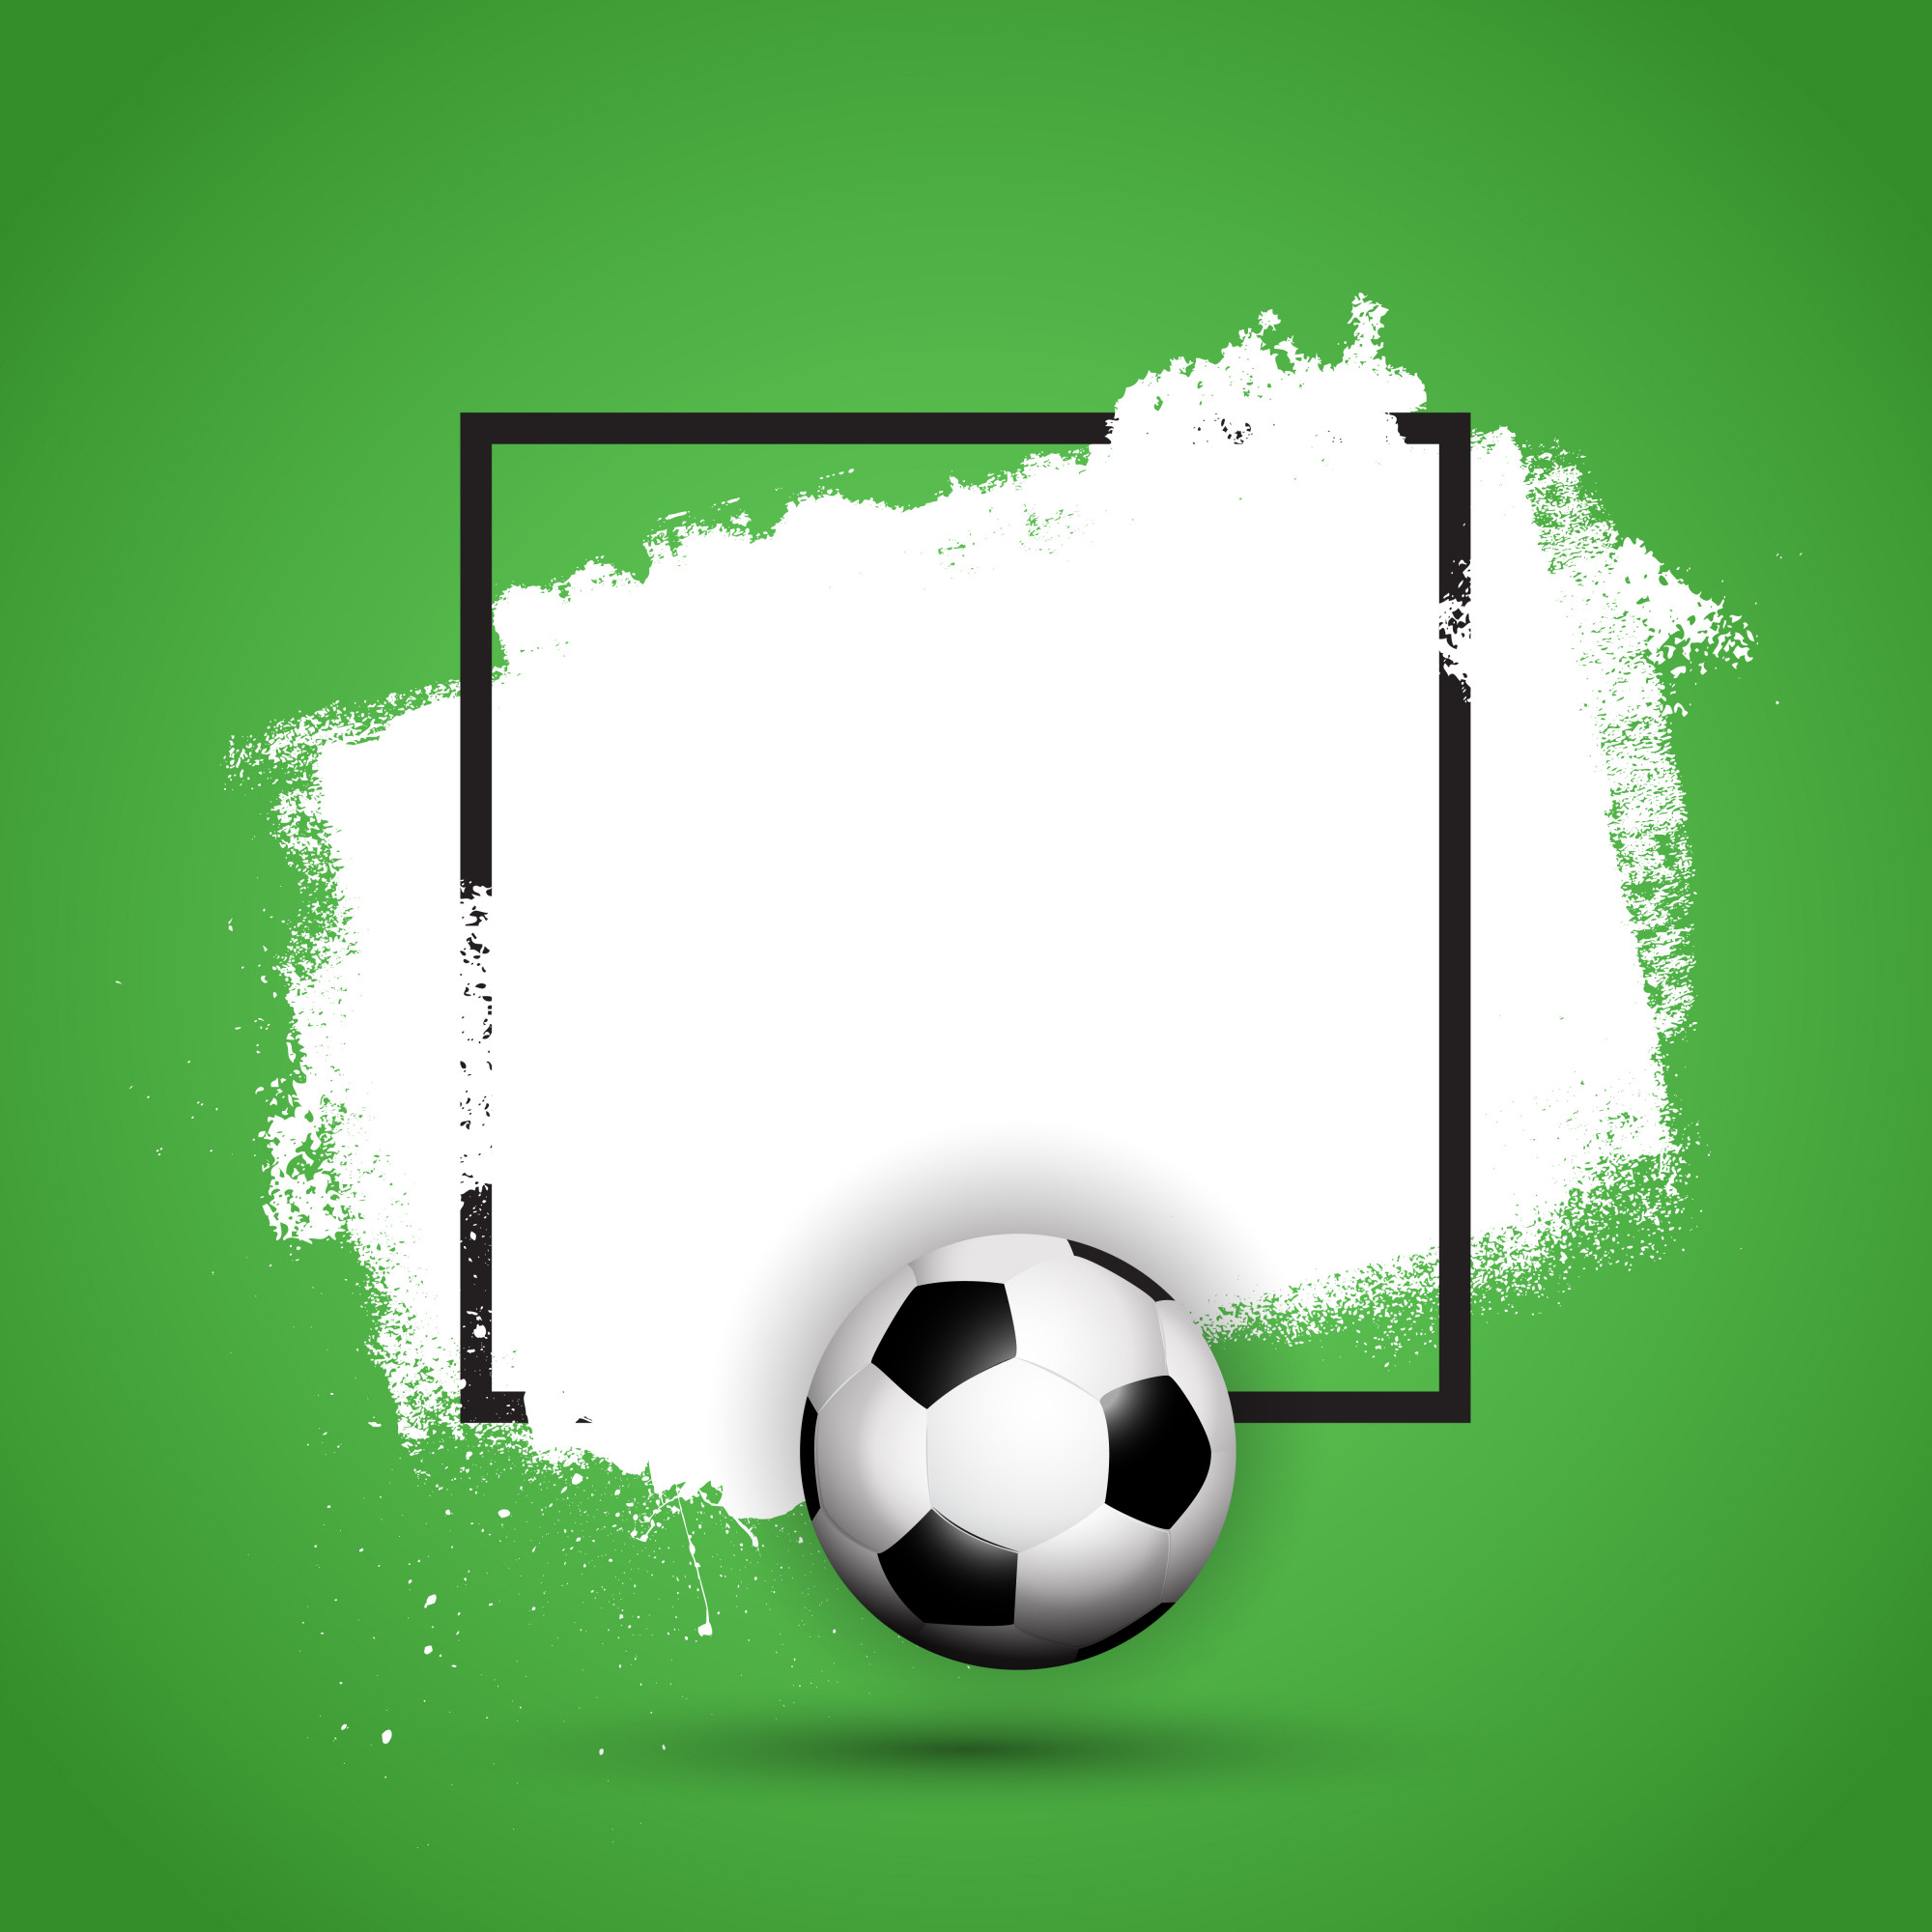 Grunge football / soccer background